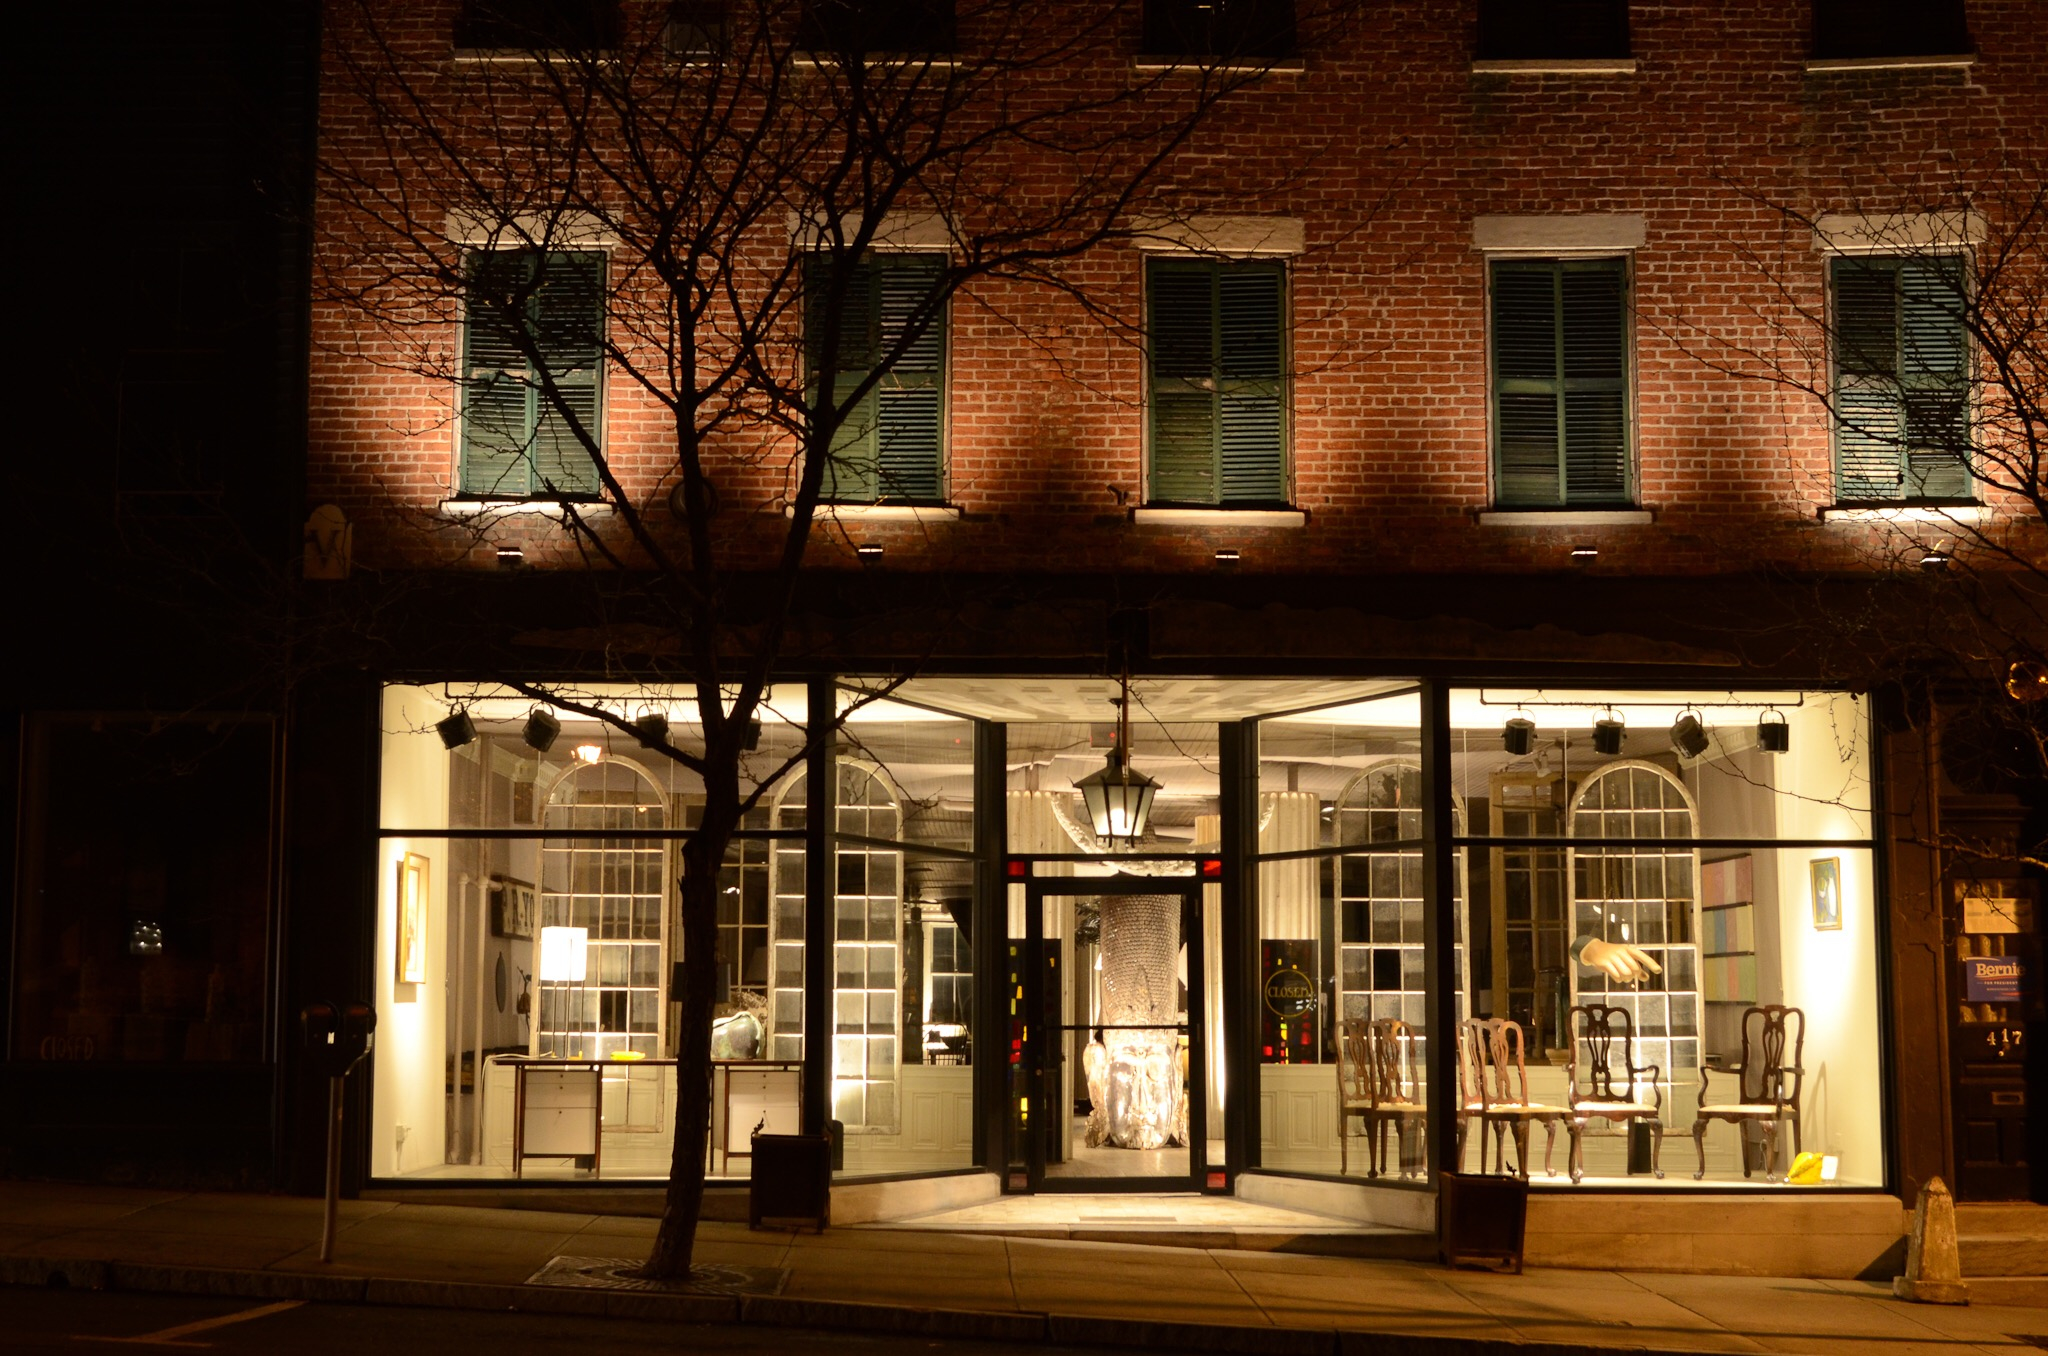 The Tin Ballroom is upstairs at Vince Mulford Antiques. The 19th century building was designed as a Venetian palazzo.